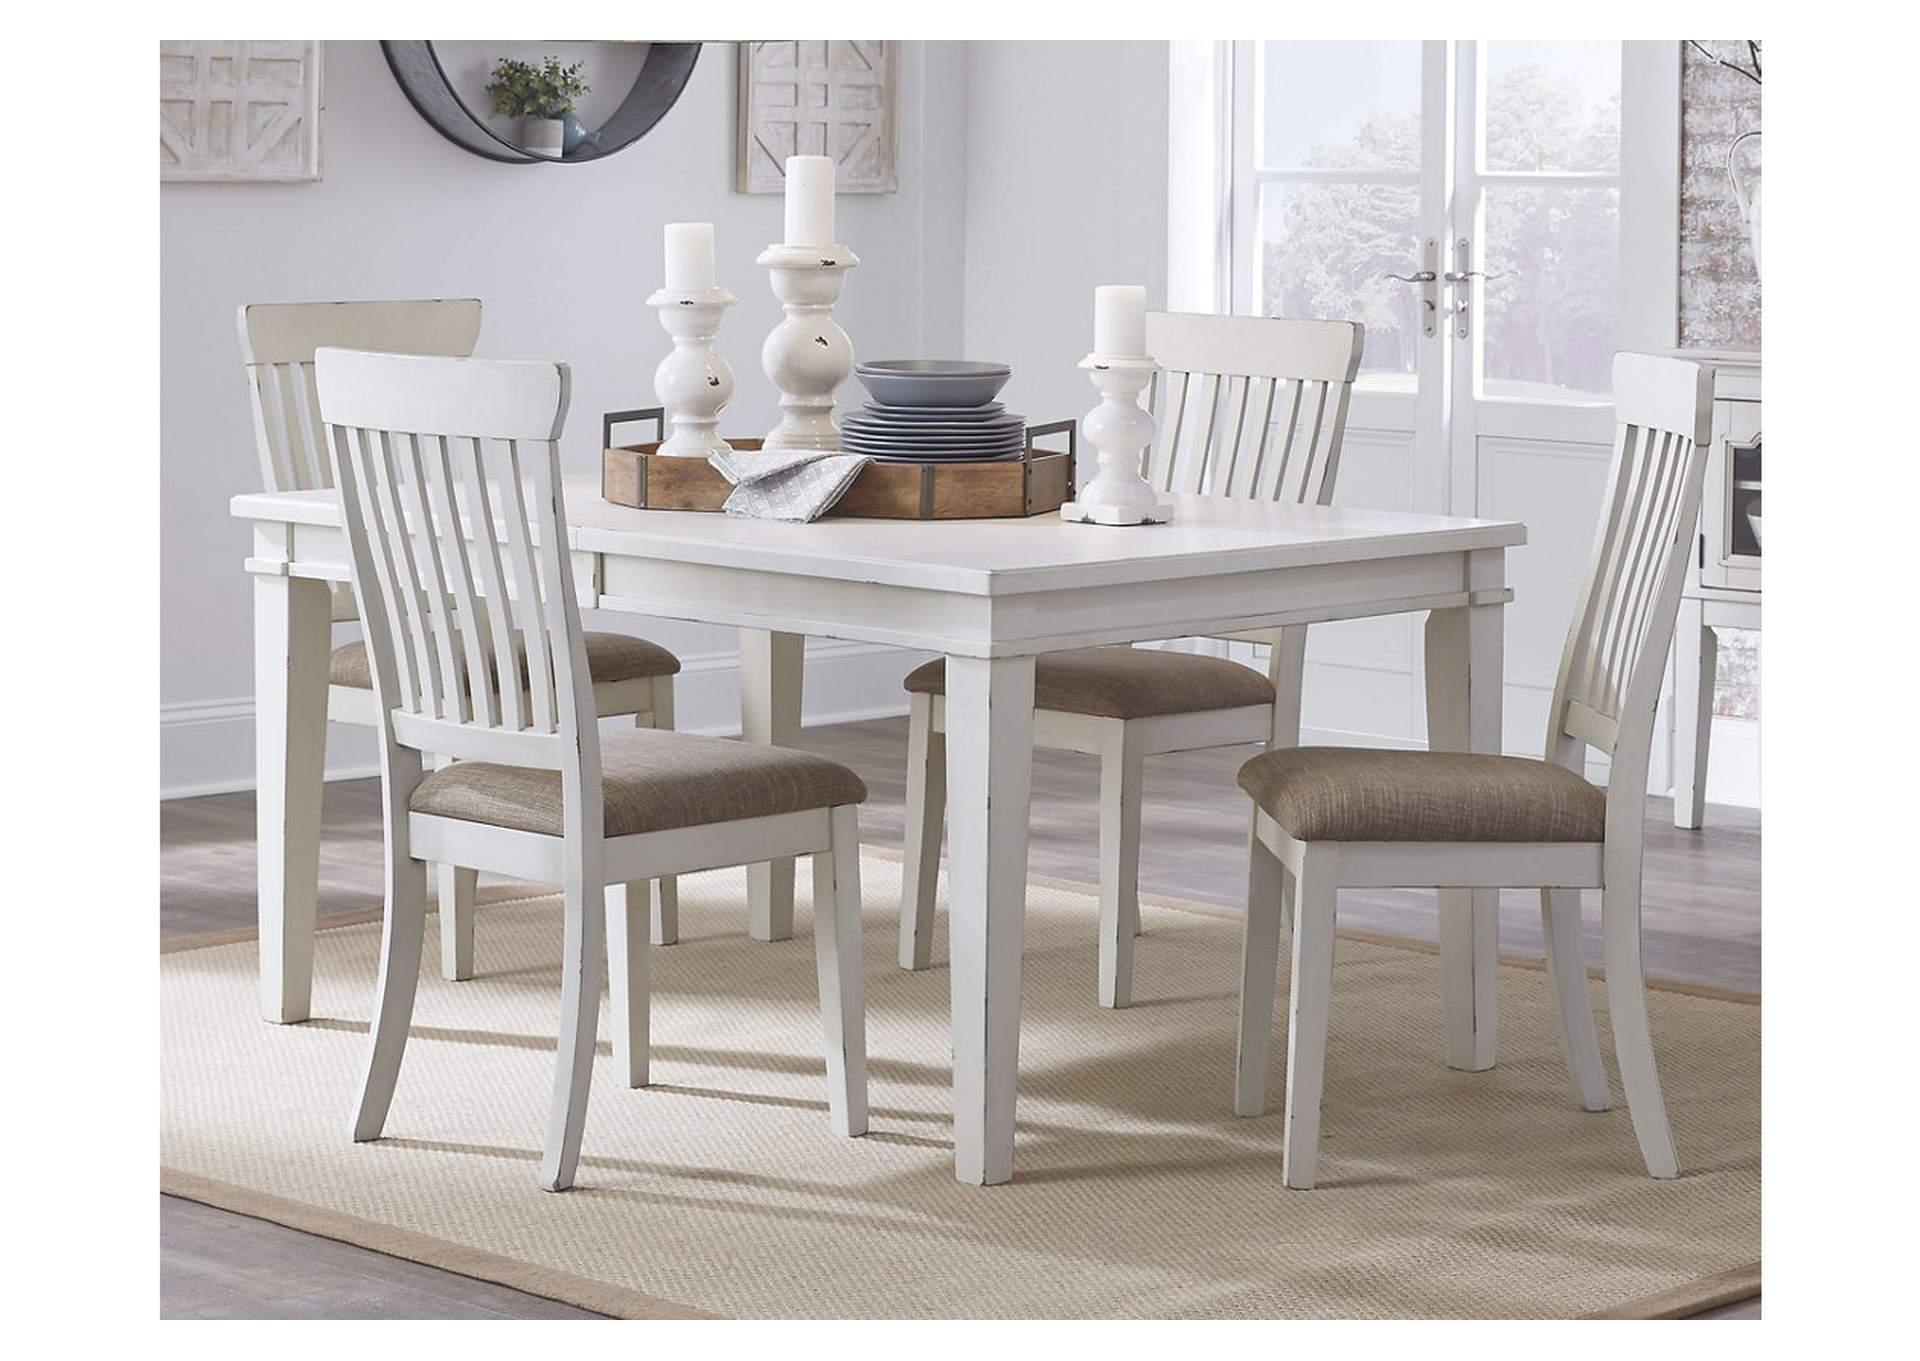 Danbeck White Rectangular Dining Room Extension Table w/18